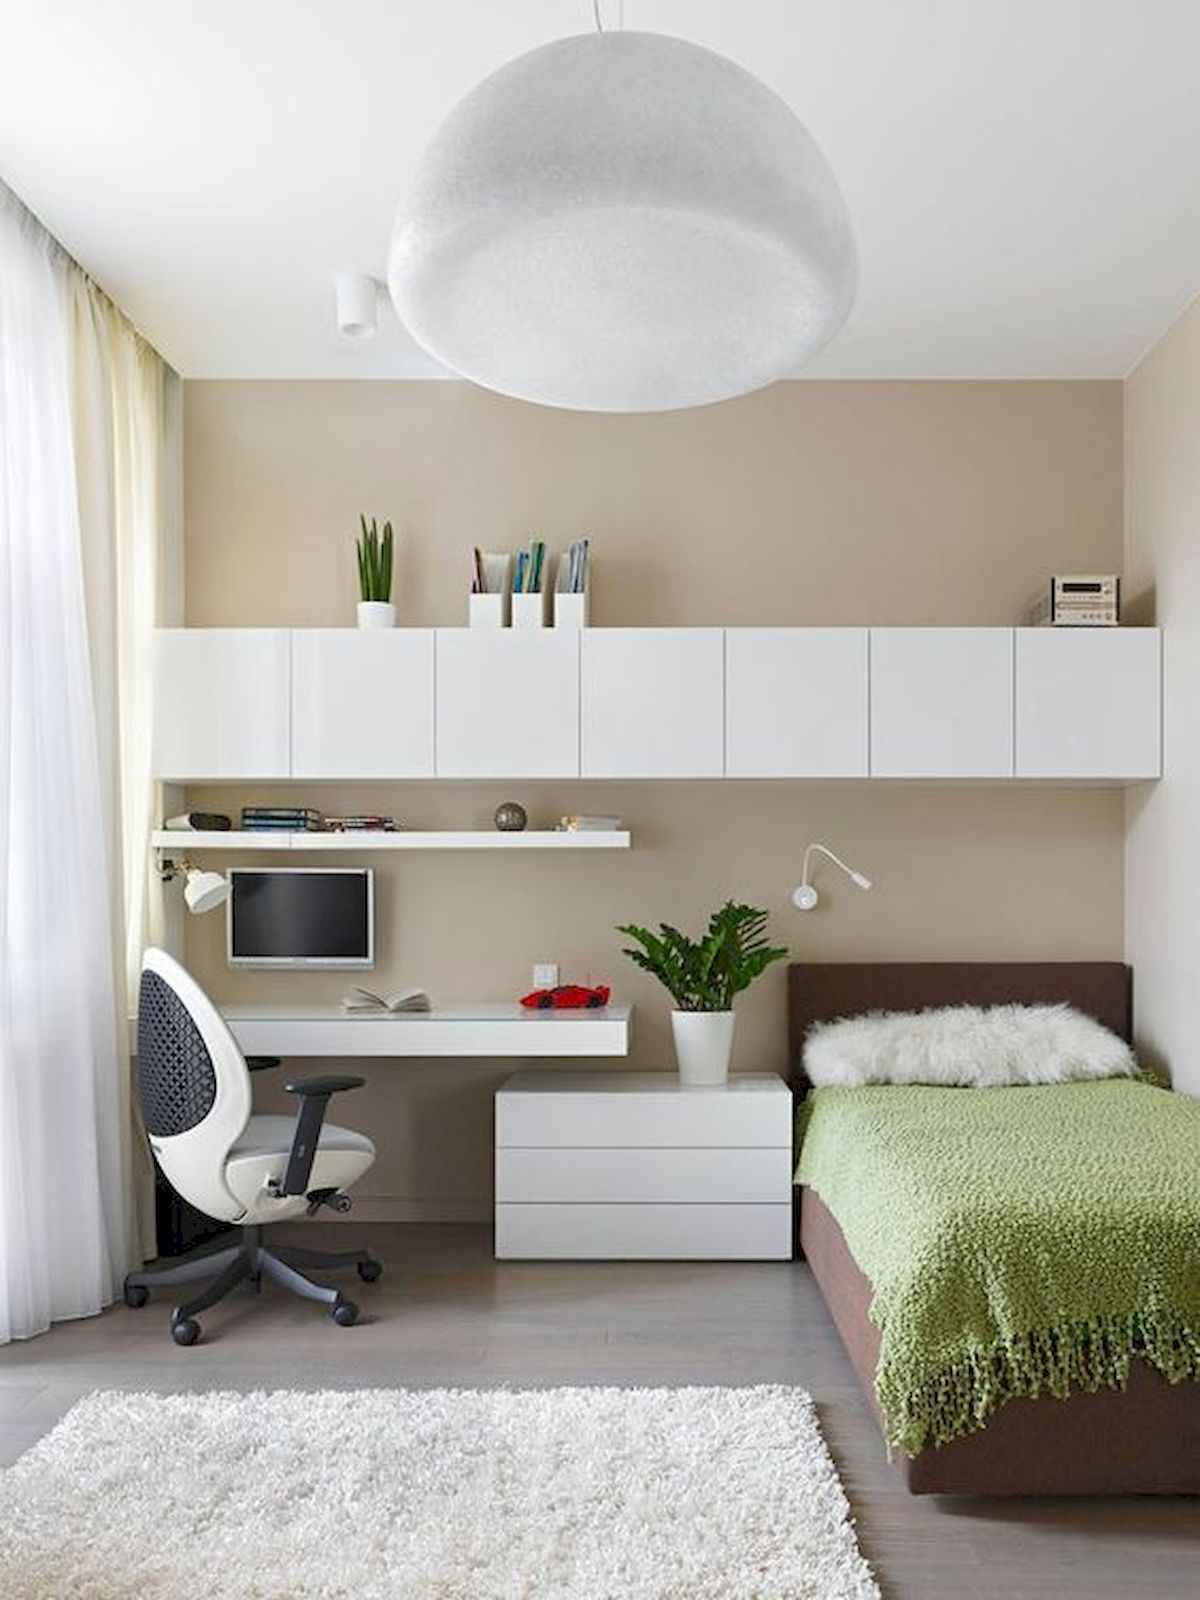 60 Small Apartment Bedroom Decor Ideas On A Budget (53)